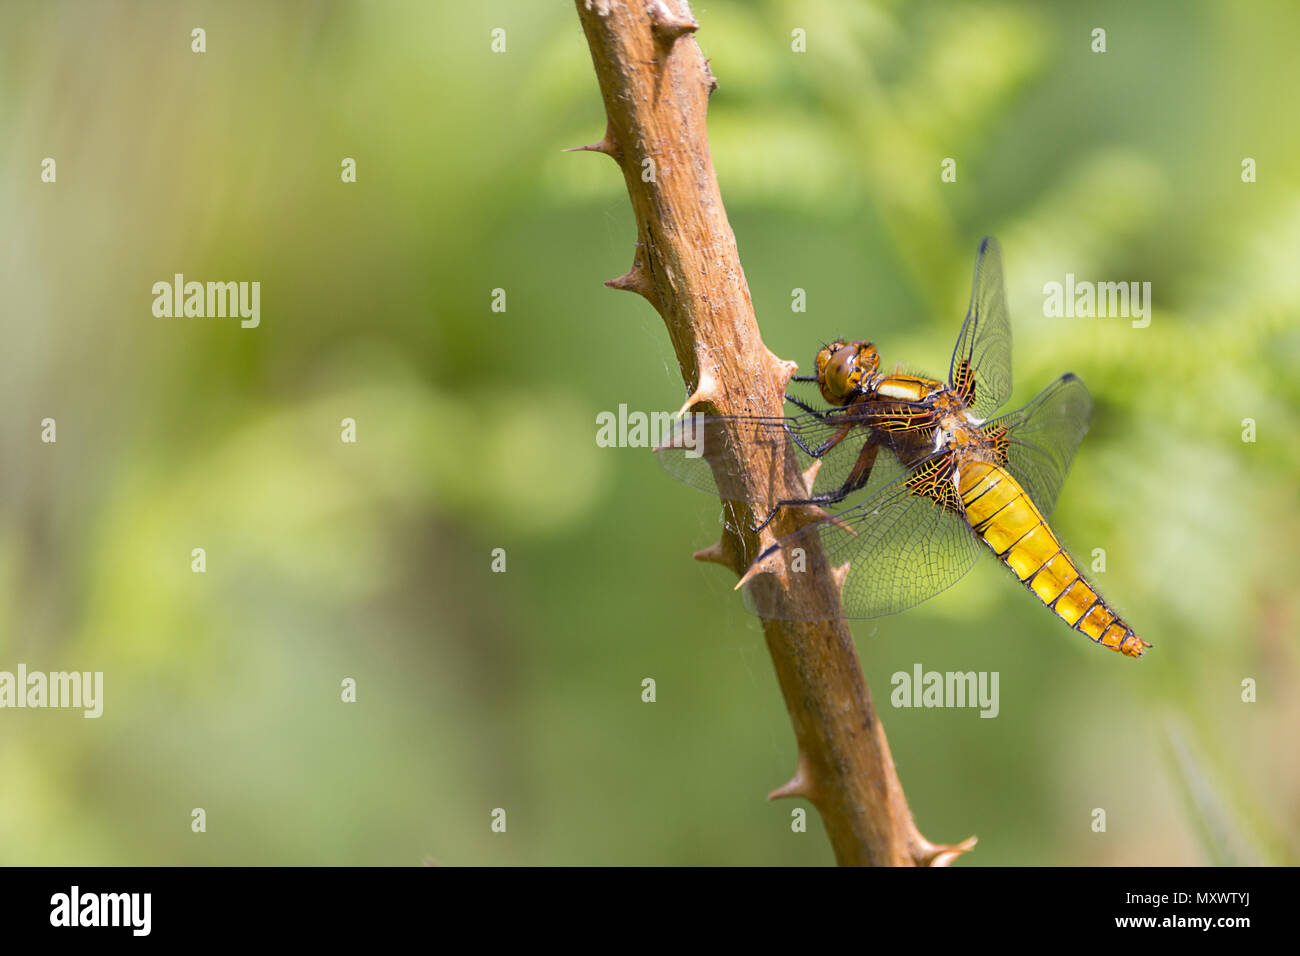 Broad bodied chaser (libellula depressa) yellow brown flattened abdomen female or immature male perched on twiggy vegetation. Brown wing base. - Stock Image